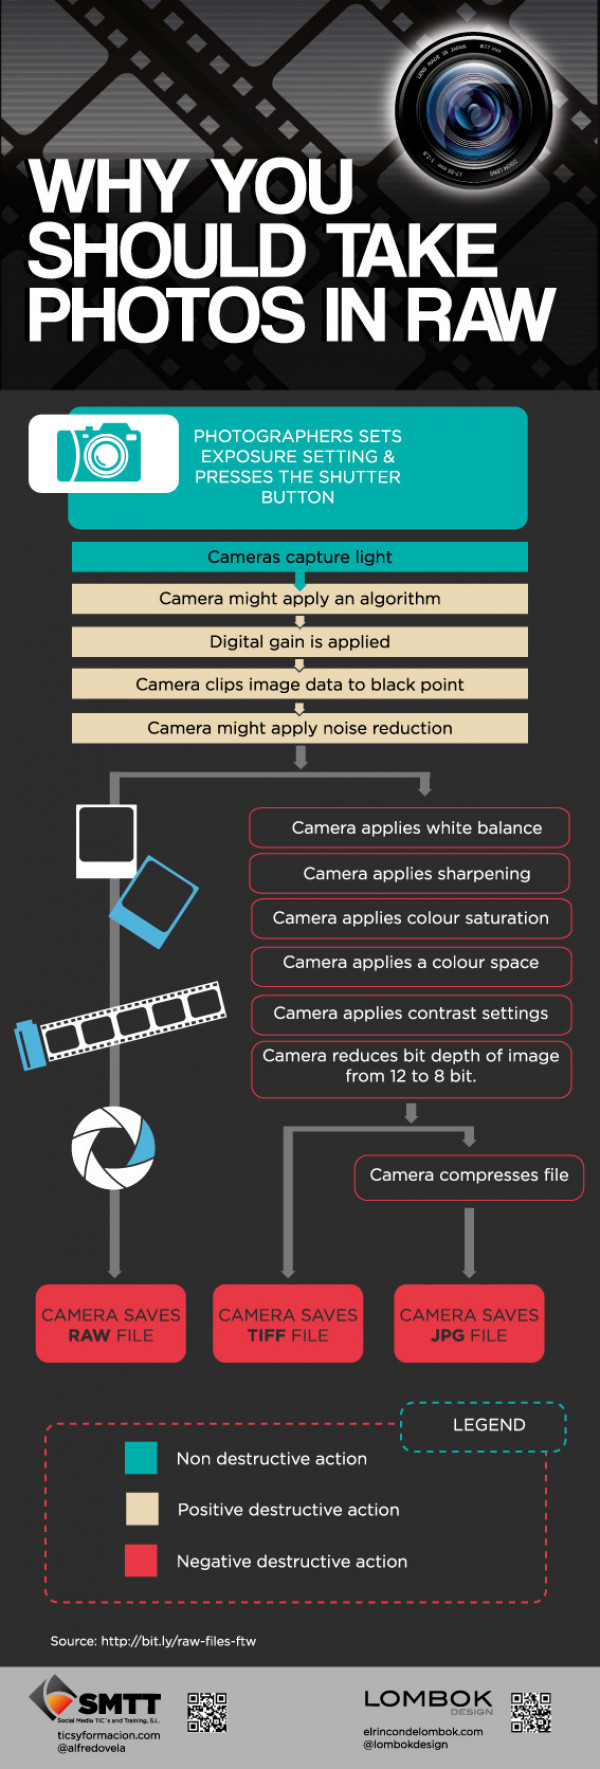 Why you should take photos in raw?